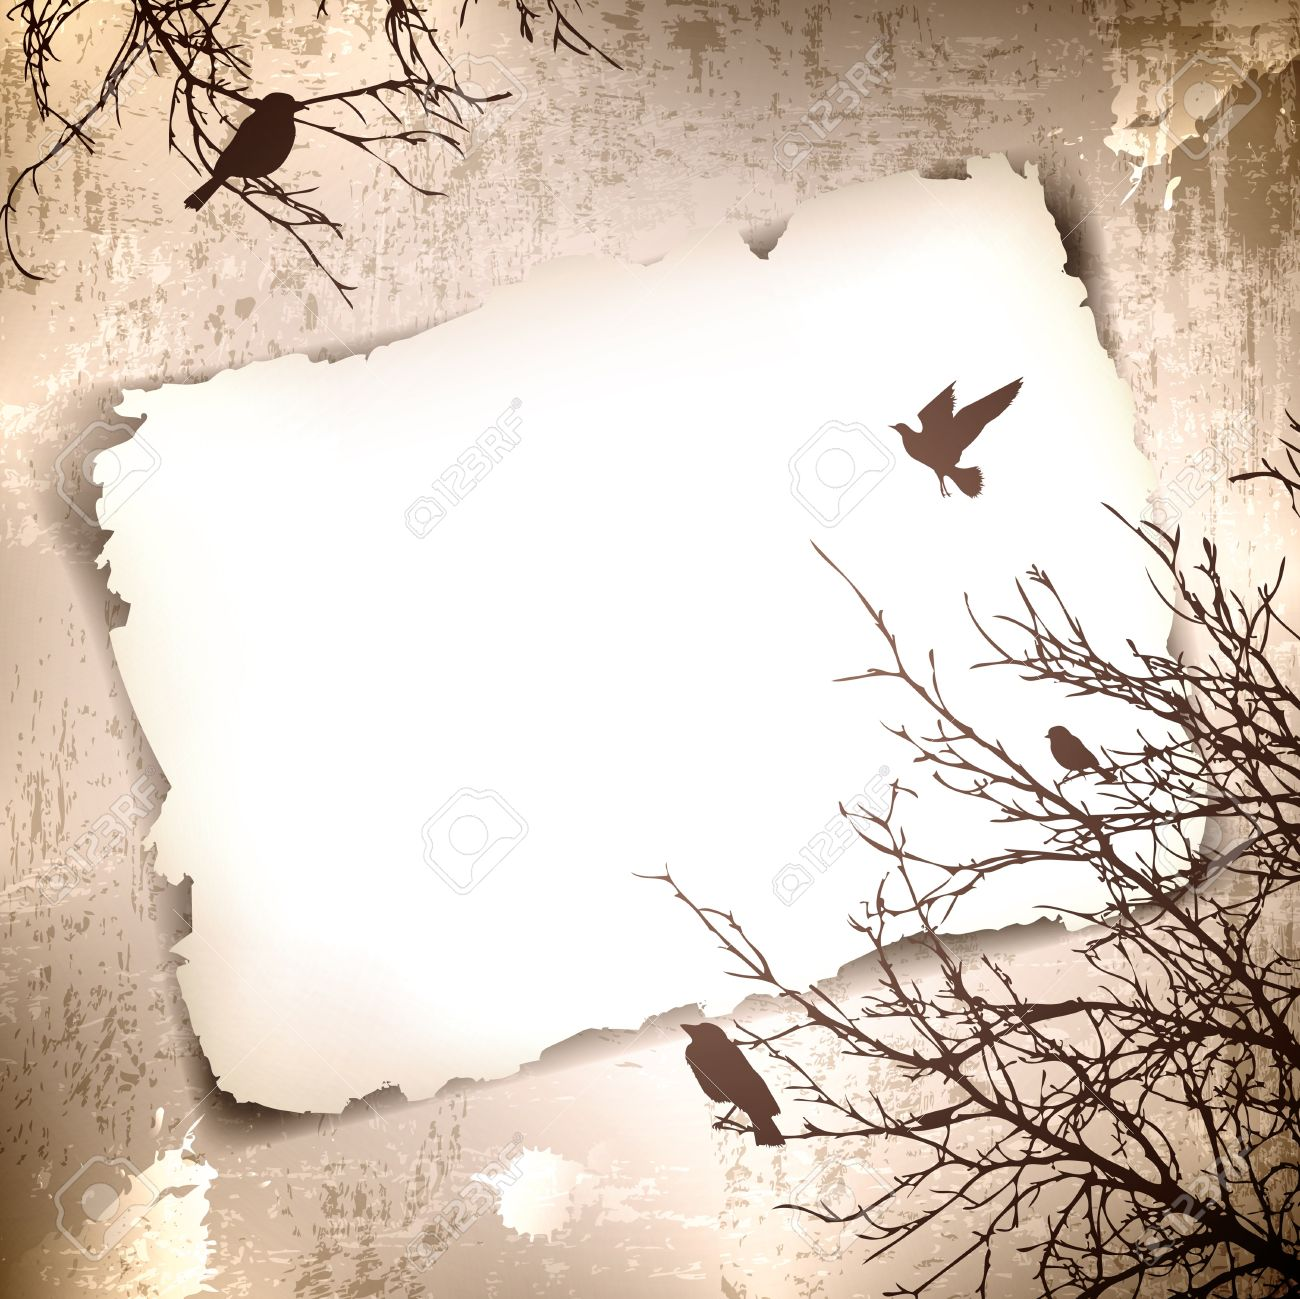 Vintage grunge background with spring birds at tree and copyspace for your text - 12486541